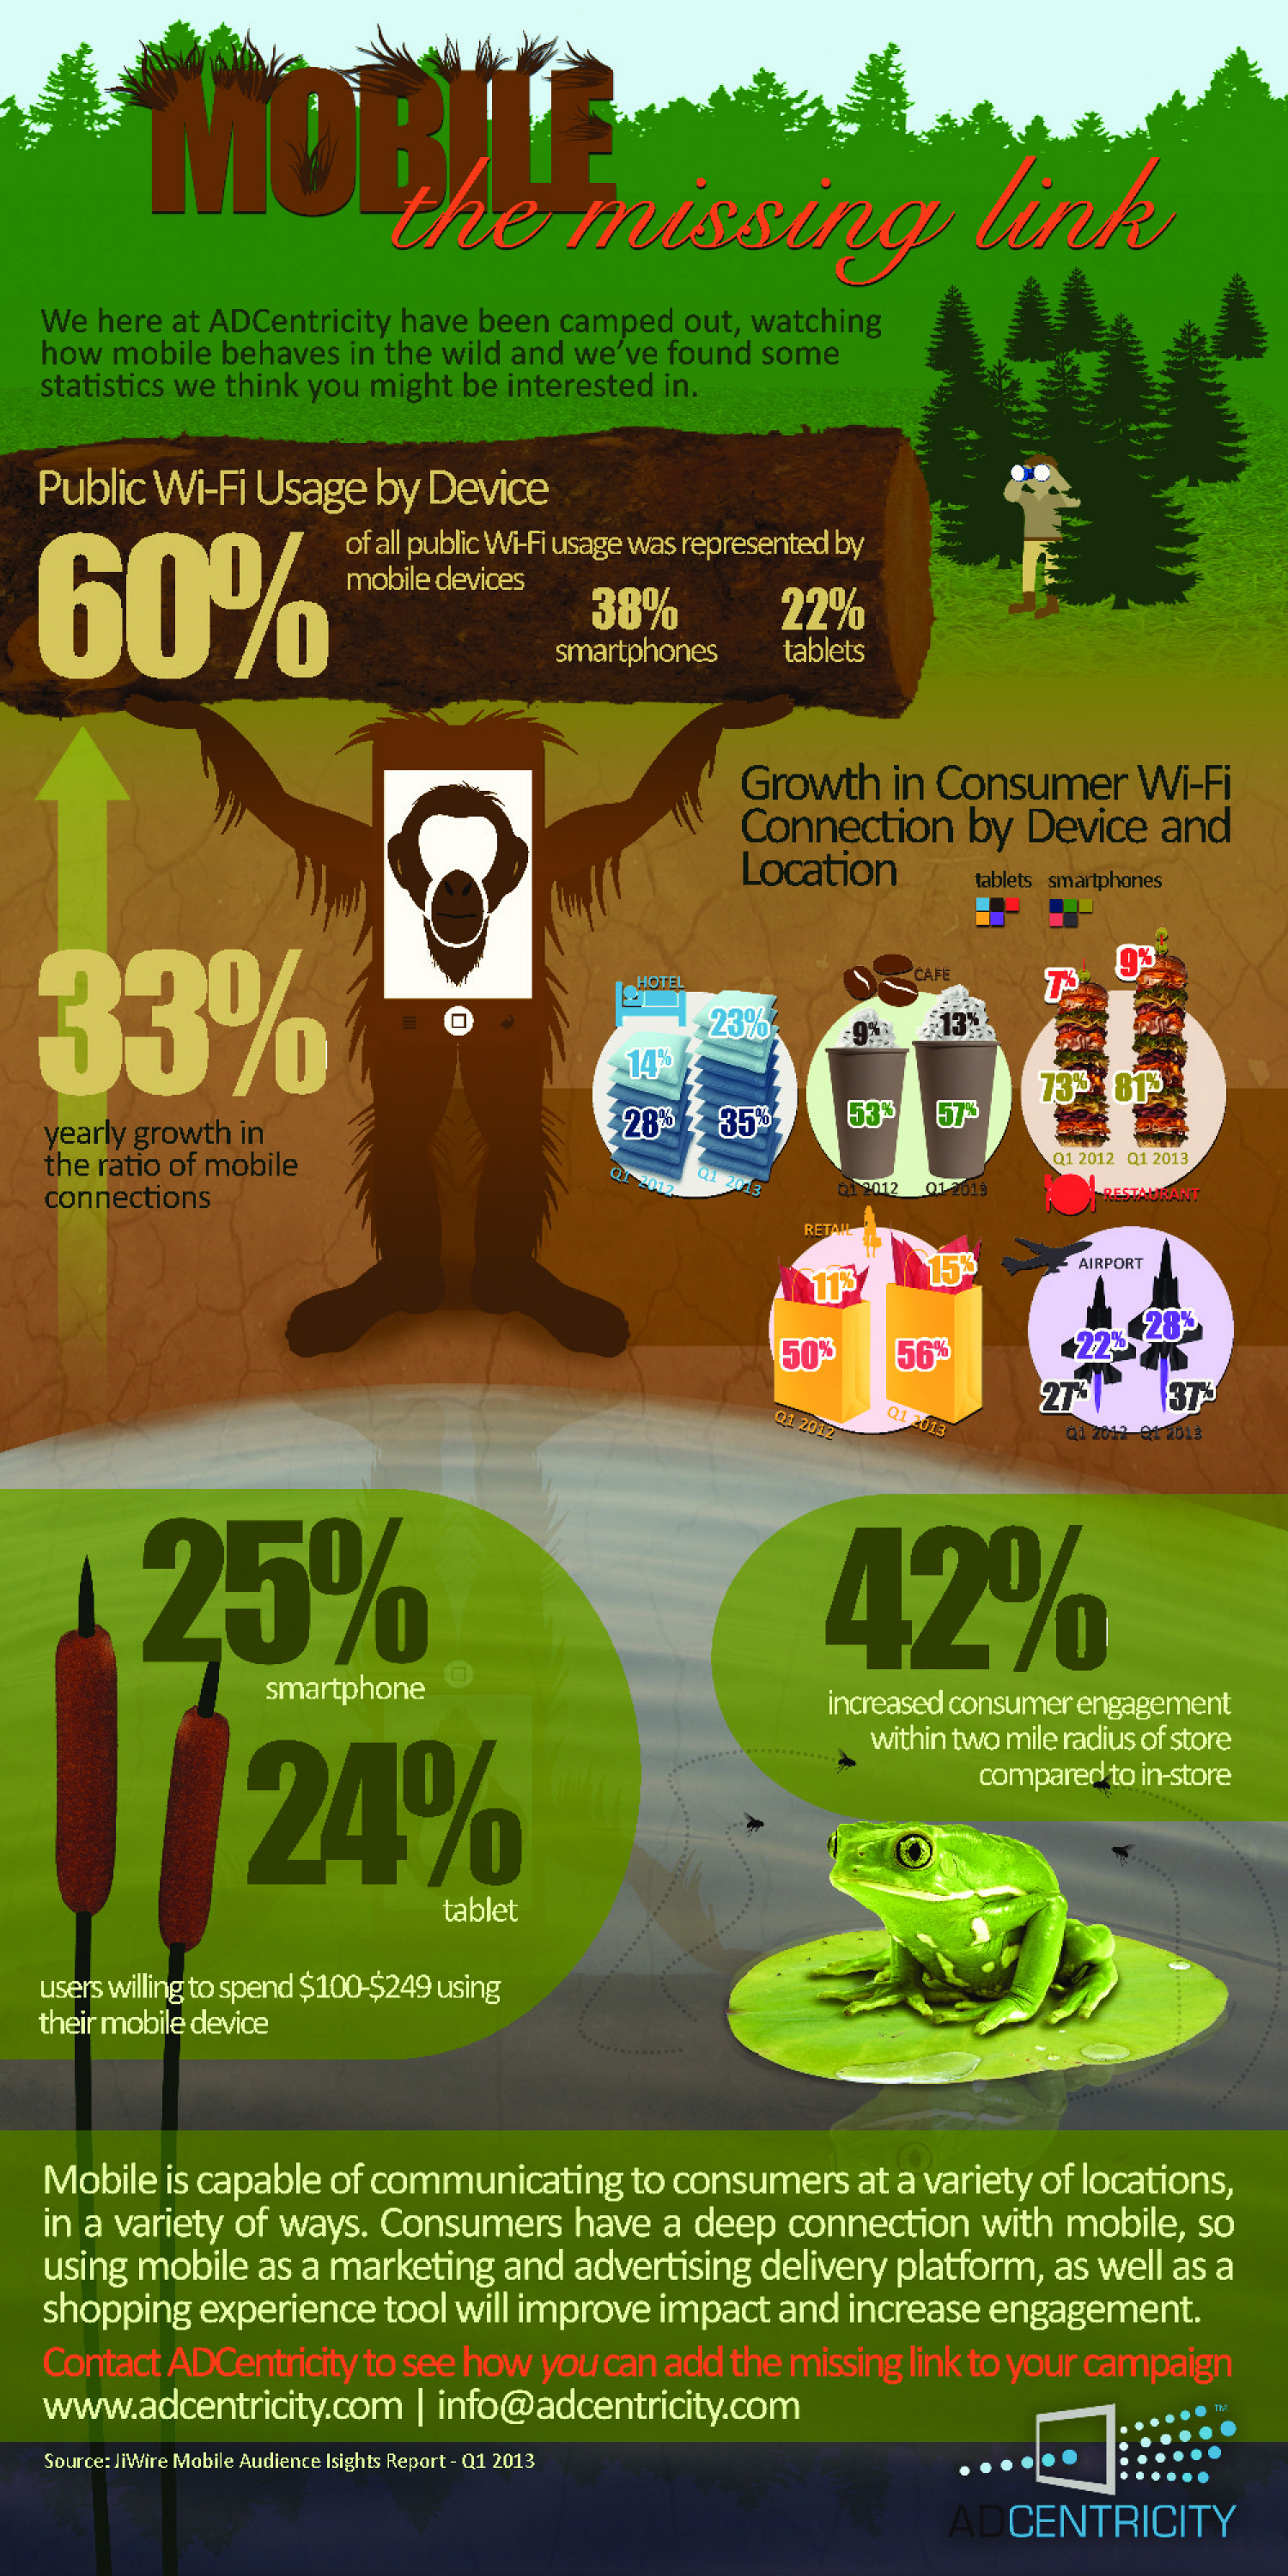 Mobile: The Missing Link 2 Infographic